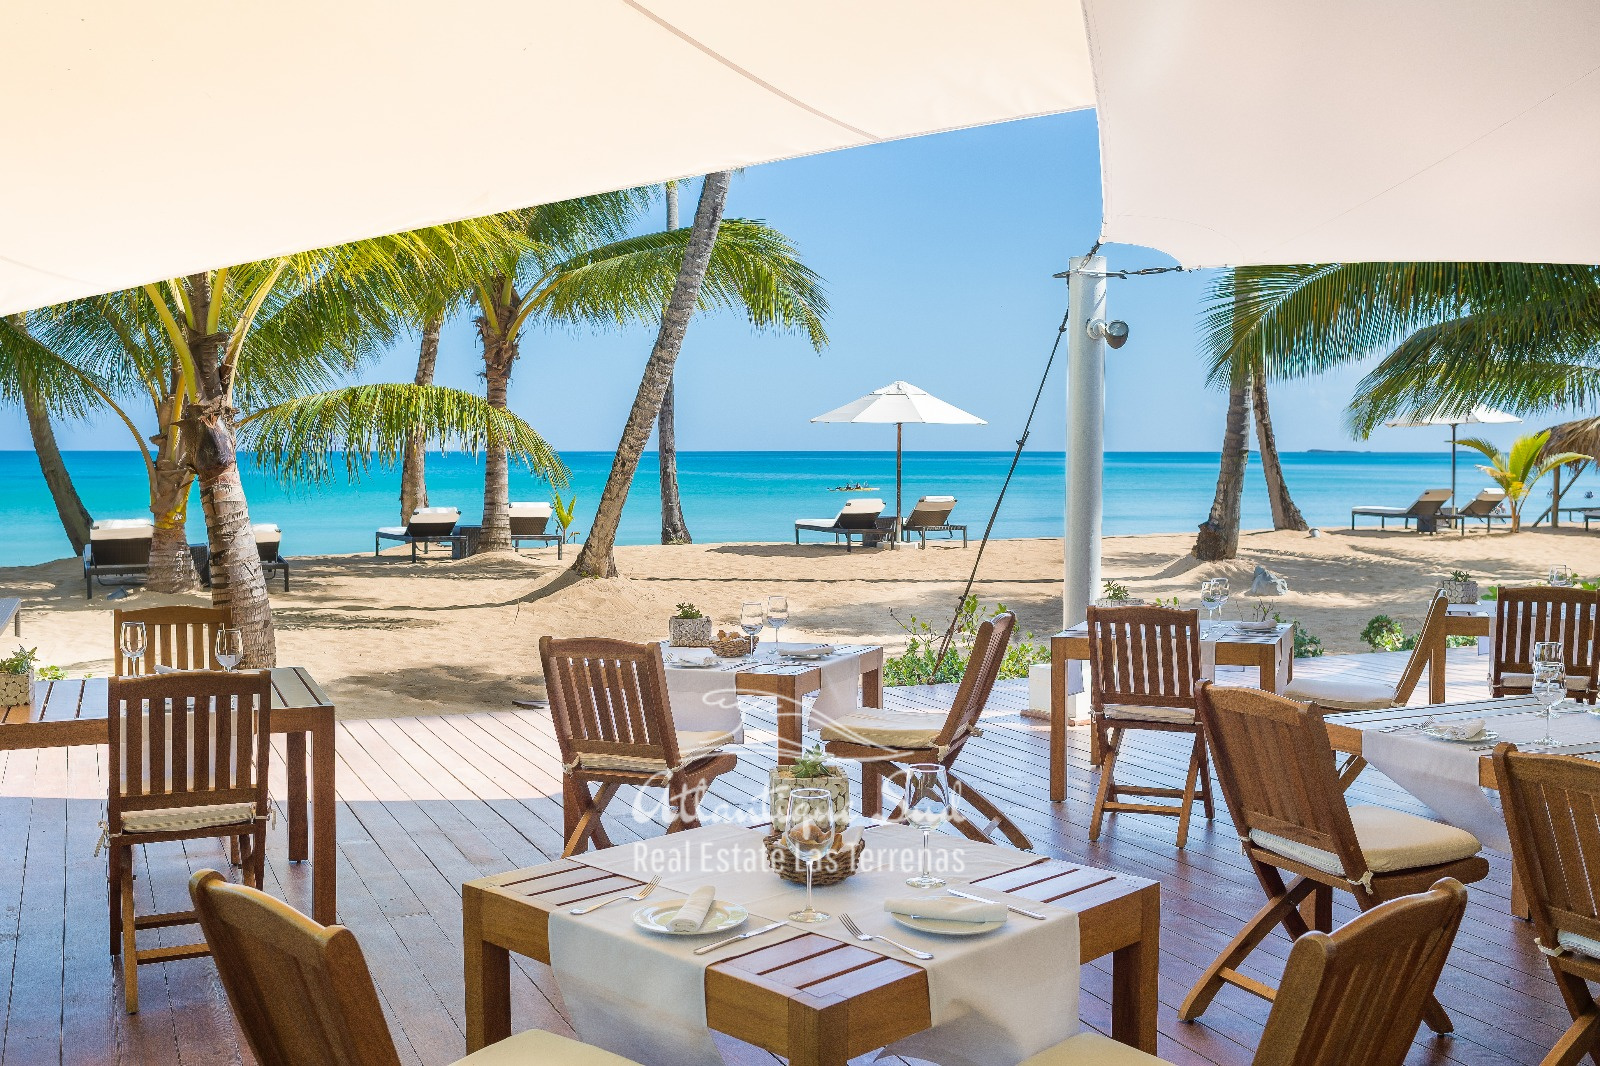 Luxurious condos in all-inclusive beachfront hotel Real Estate Las Terrenas Atlantique Sud2.jpeg